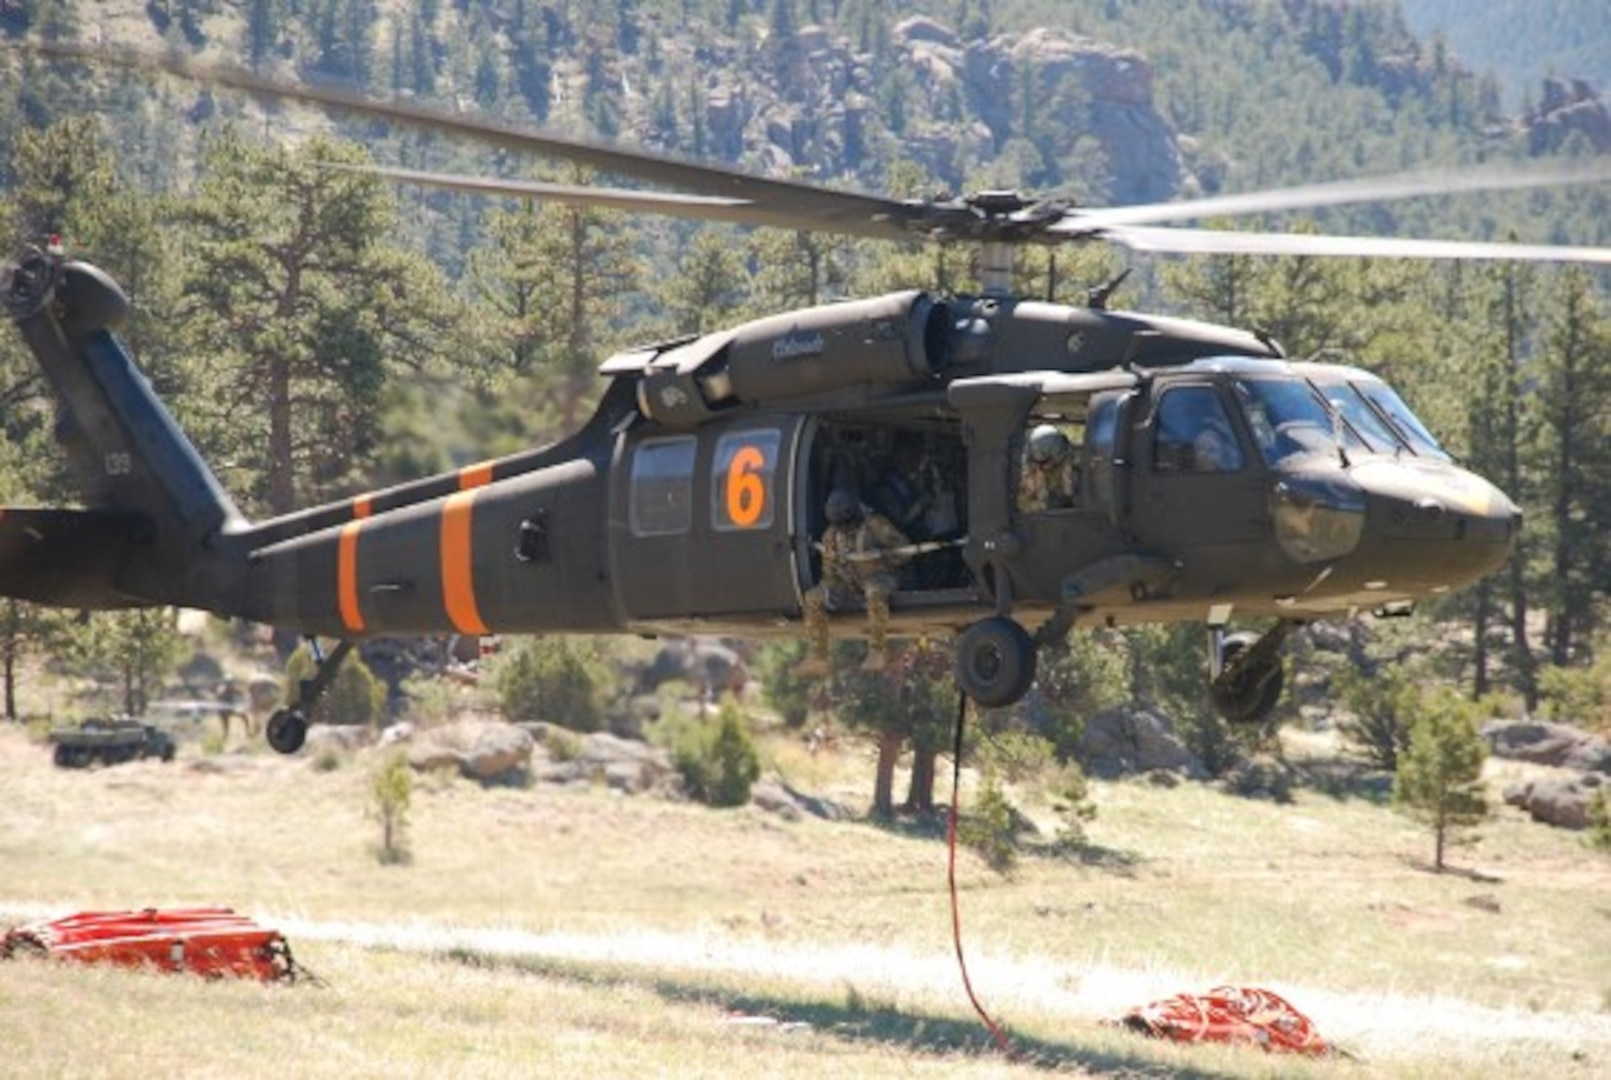 A Colorado Army National Guard Black Hawk helicopter, equipped with an aerial water bucket, departs from Button Rock Reservoir, Lyons, Colorado, to conduct bucket training in preparation for wildland fire season.